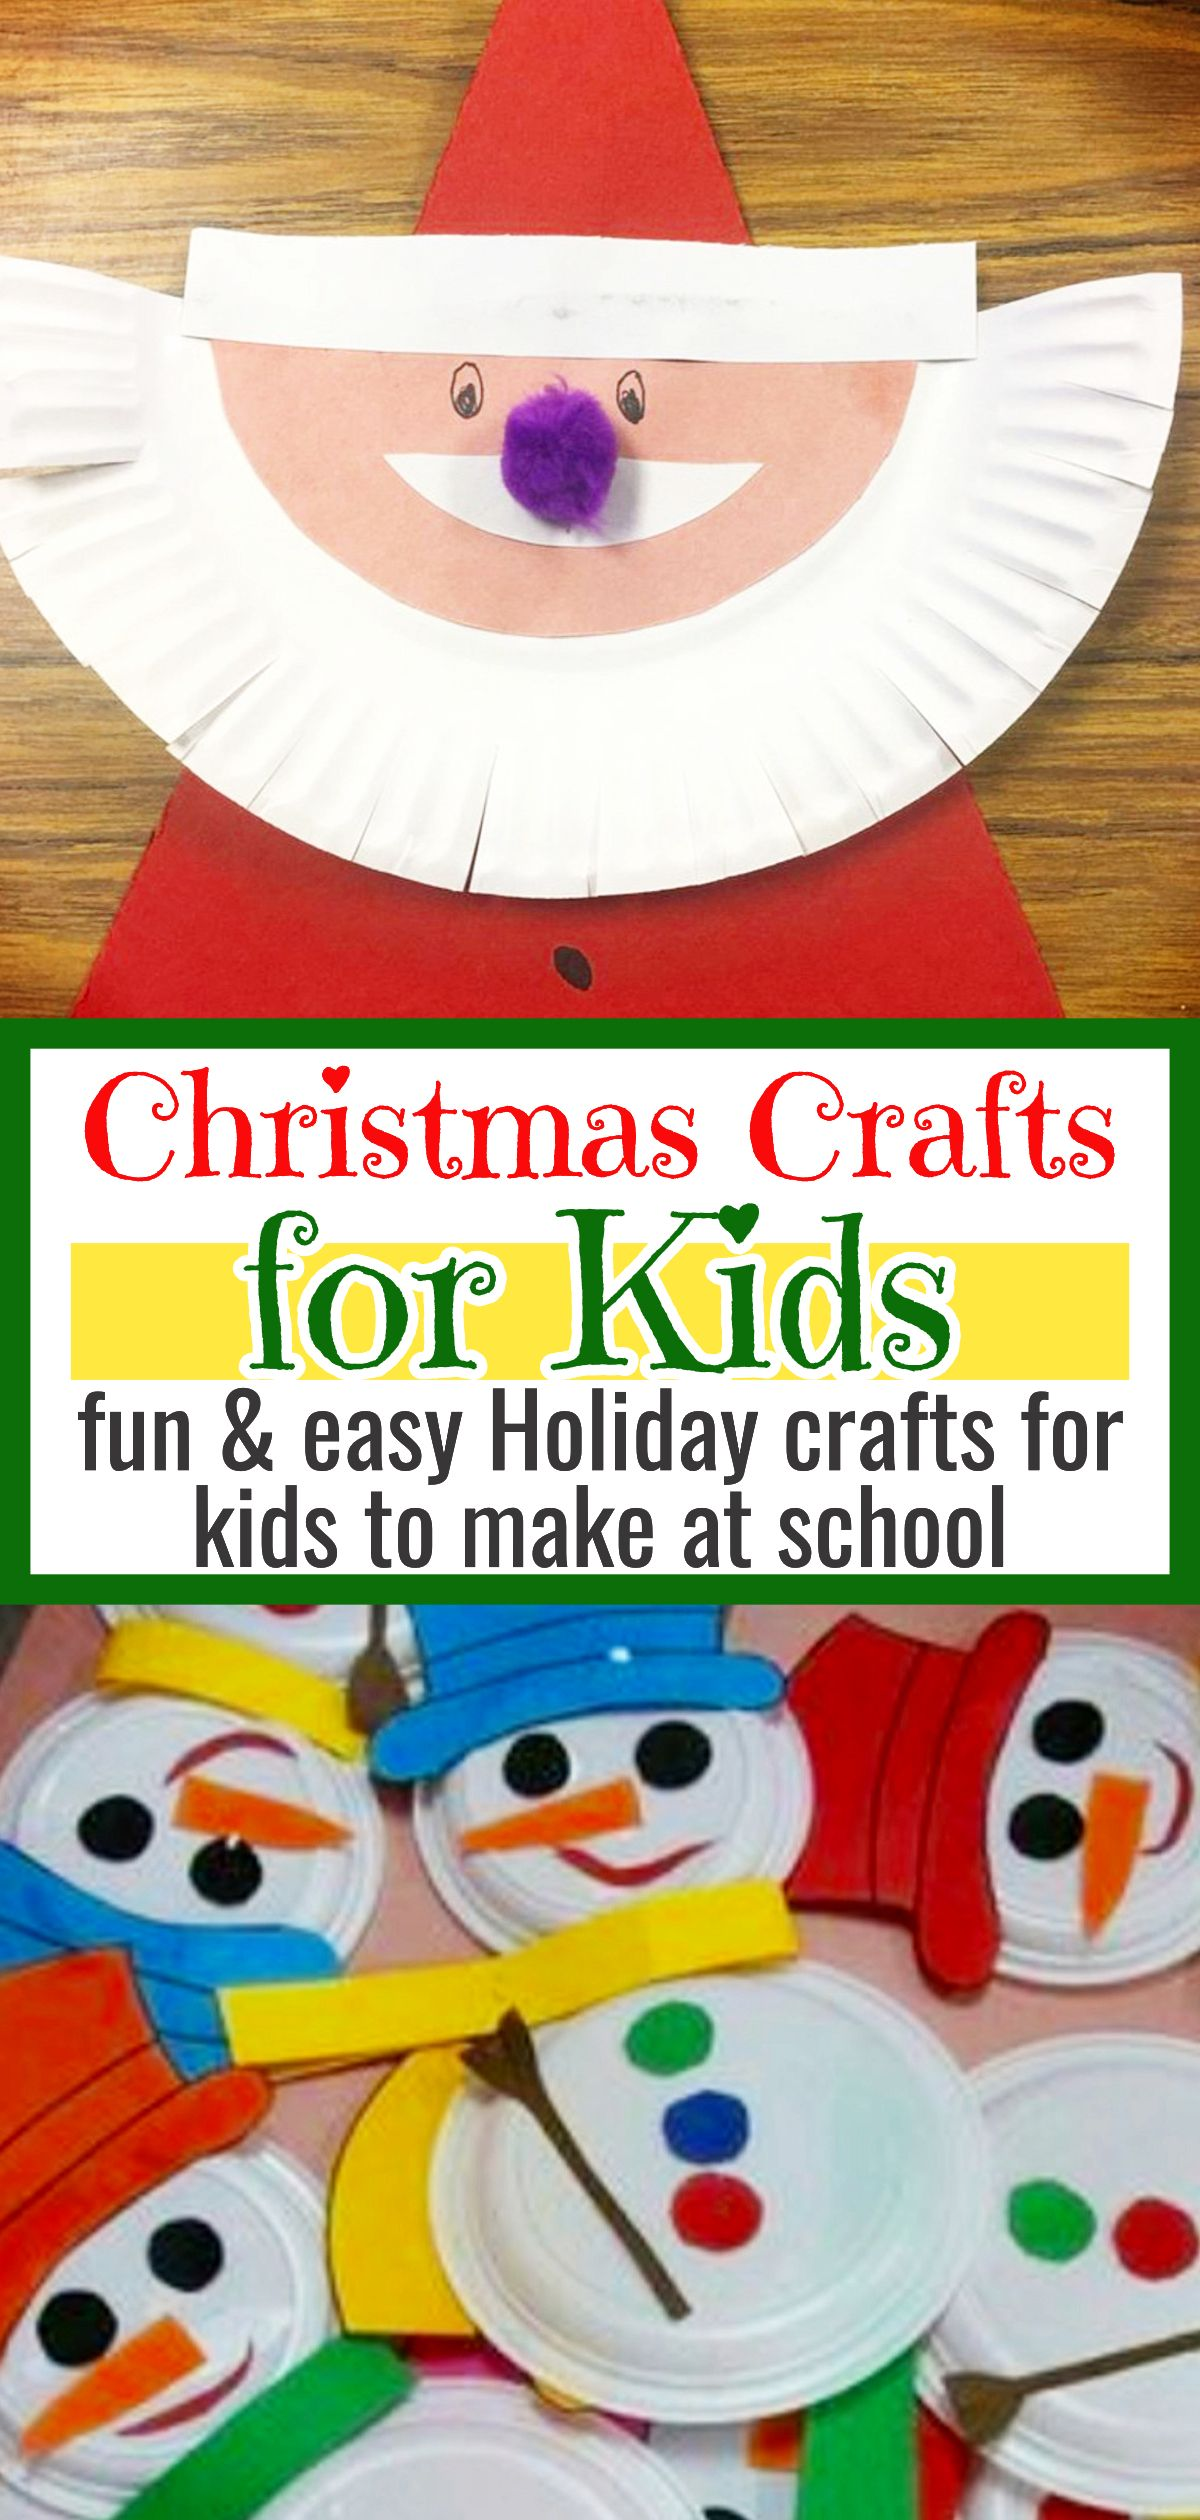 12+ Christmas craft fairs 2020 ideas in 2021